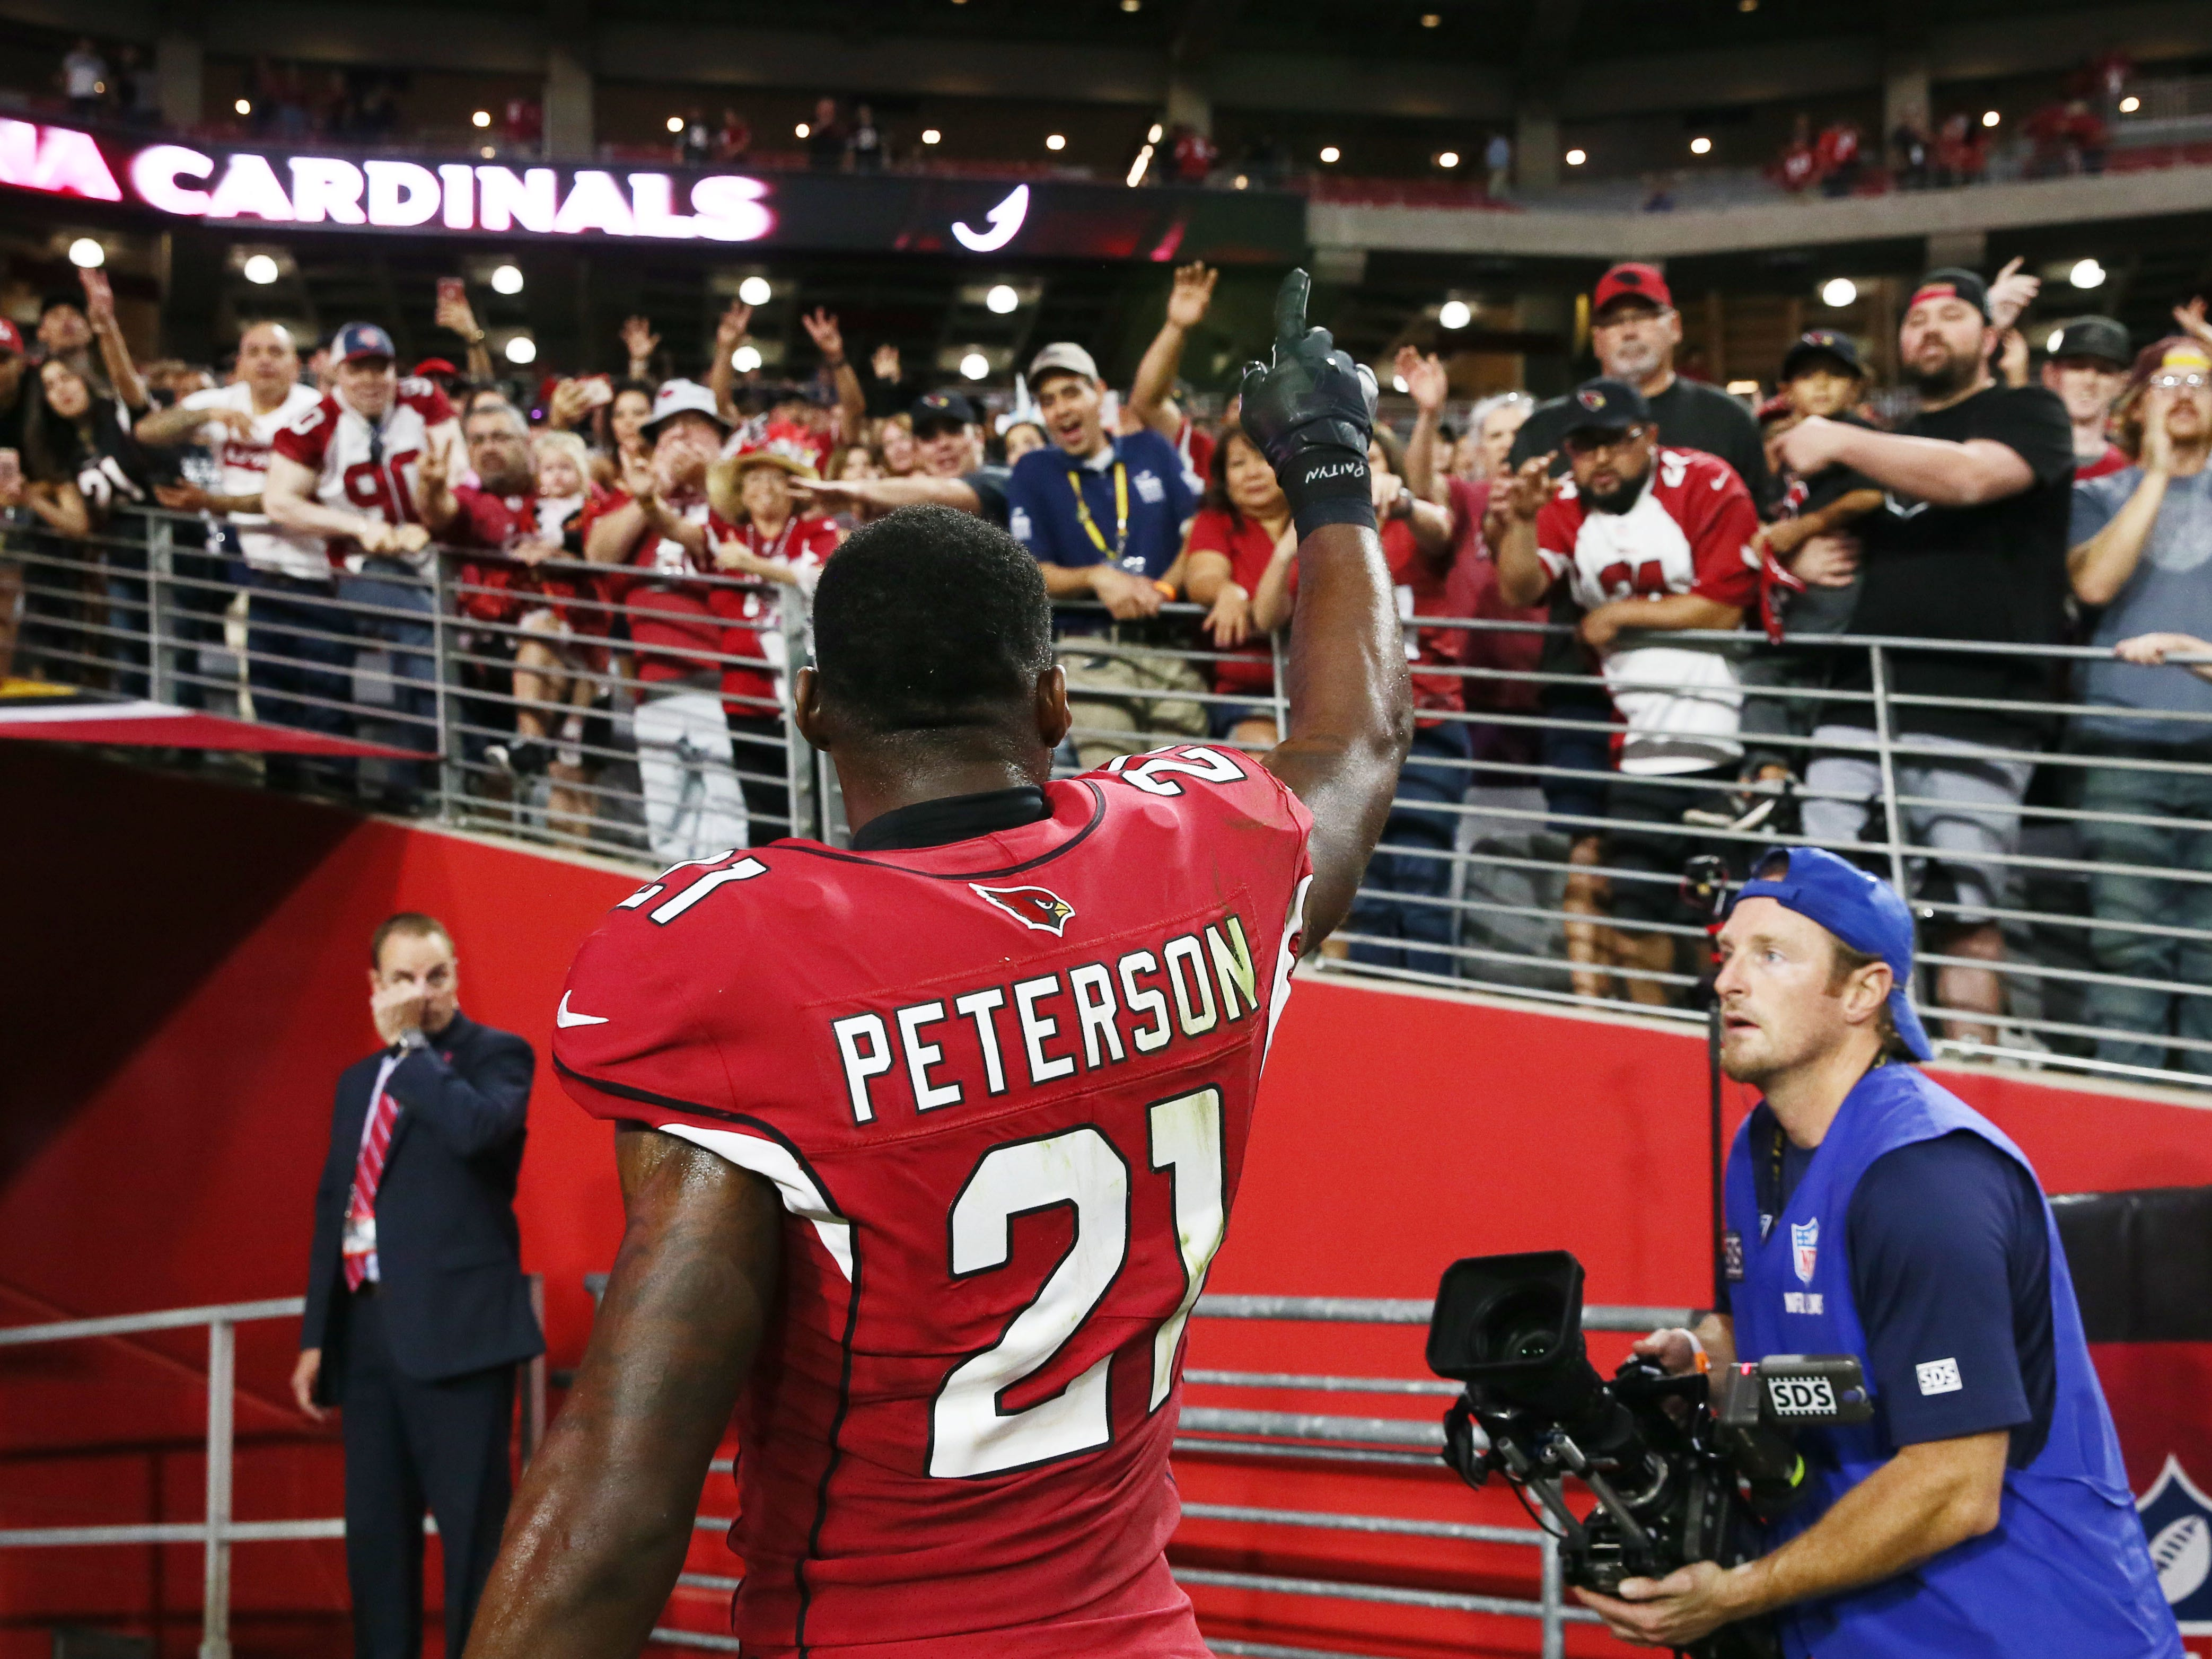 Arizona Cardinals fans cheer for Patrick Peterson after defeating the San Francisco 49ers 18-15 during a game on Oct. 28 at State Farm Stadium.